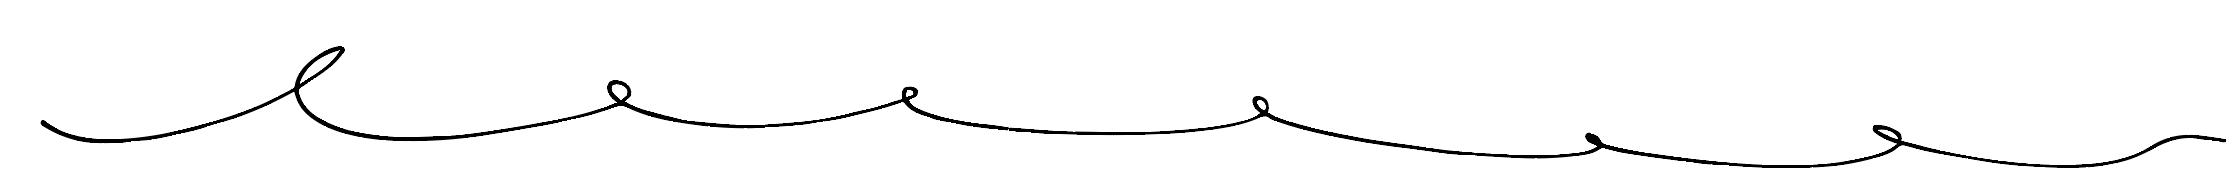 squiggles.png